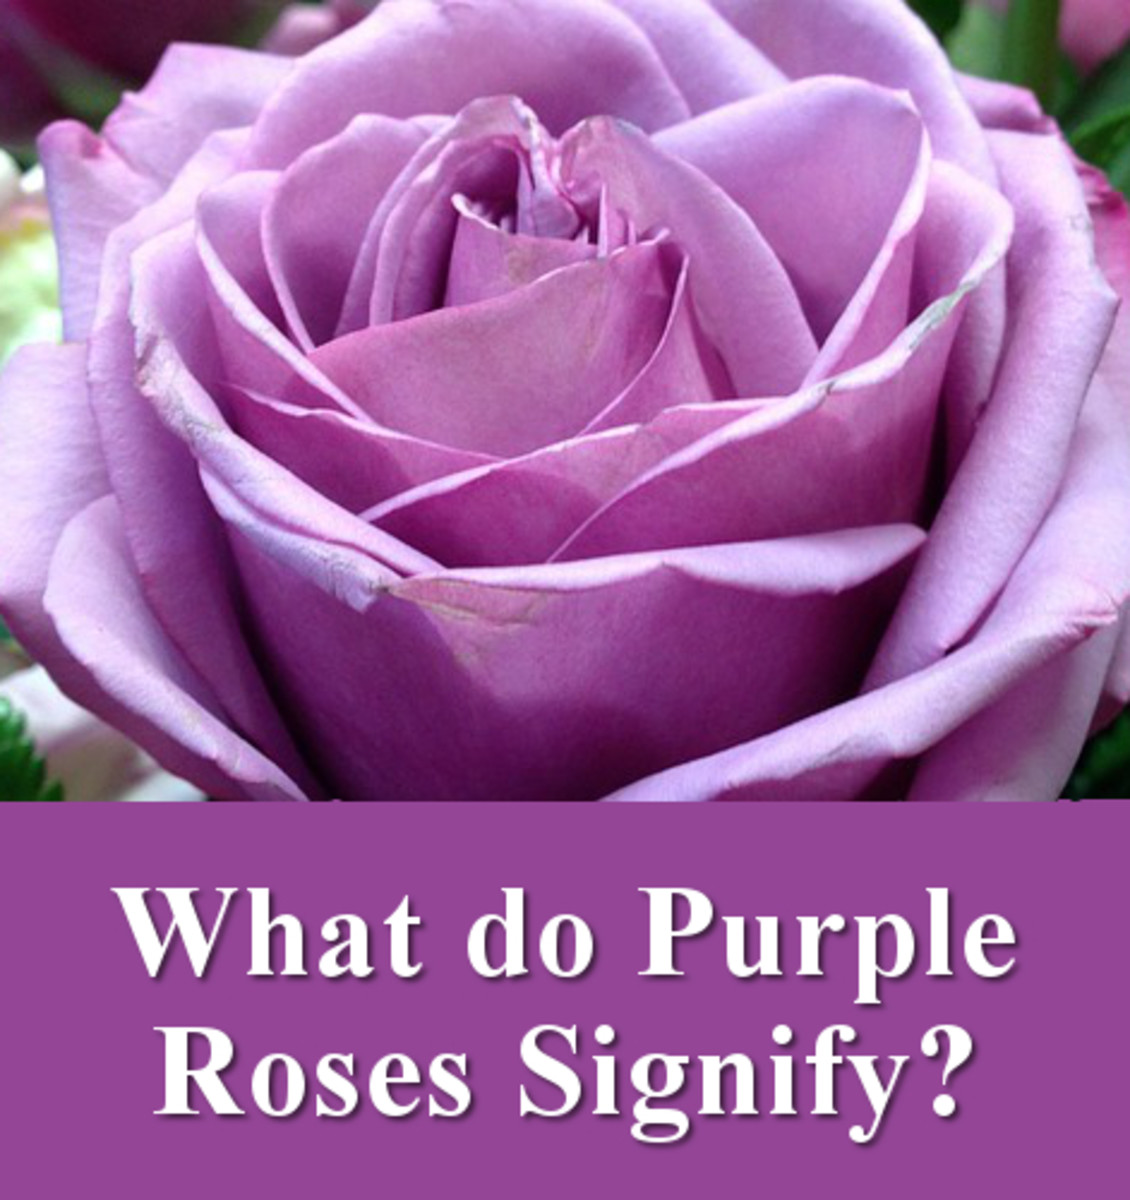 What do purple rose flowers signify?